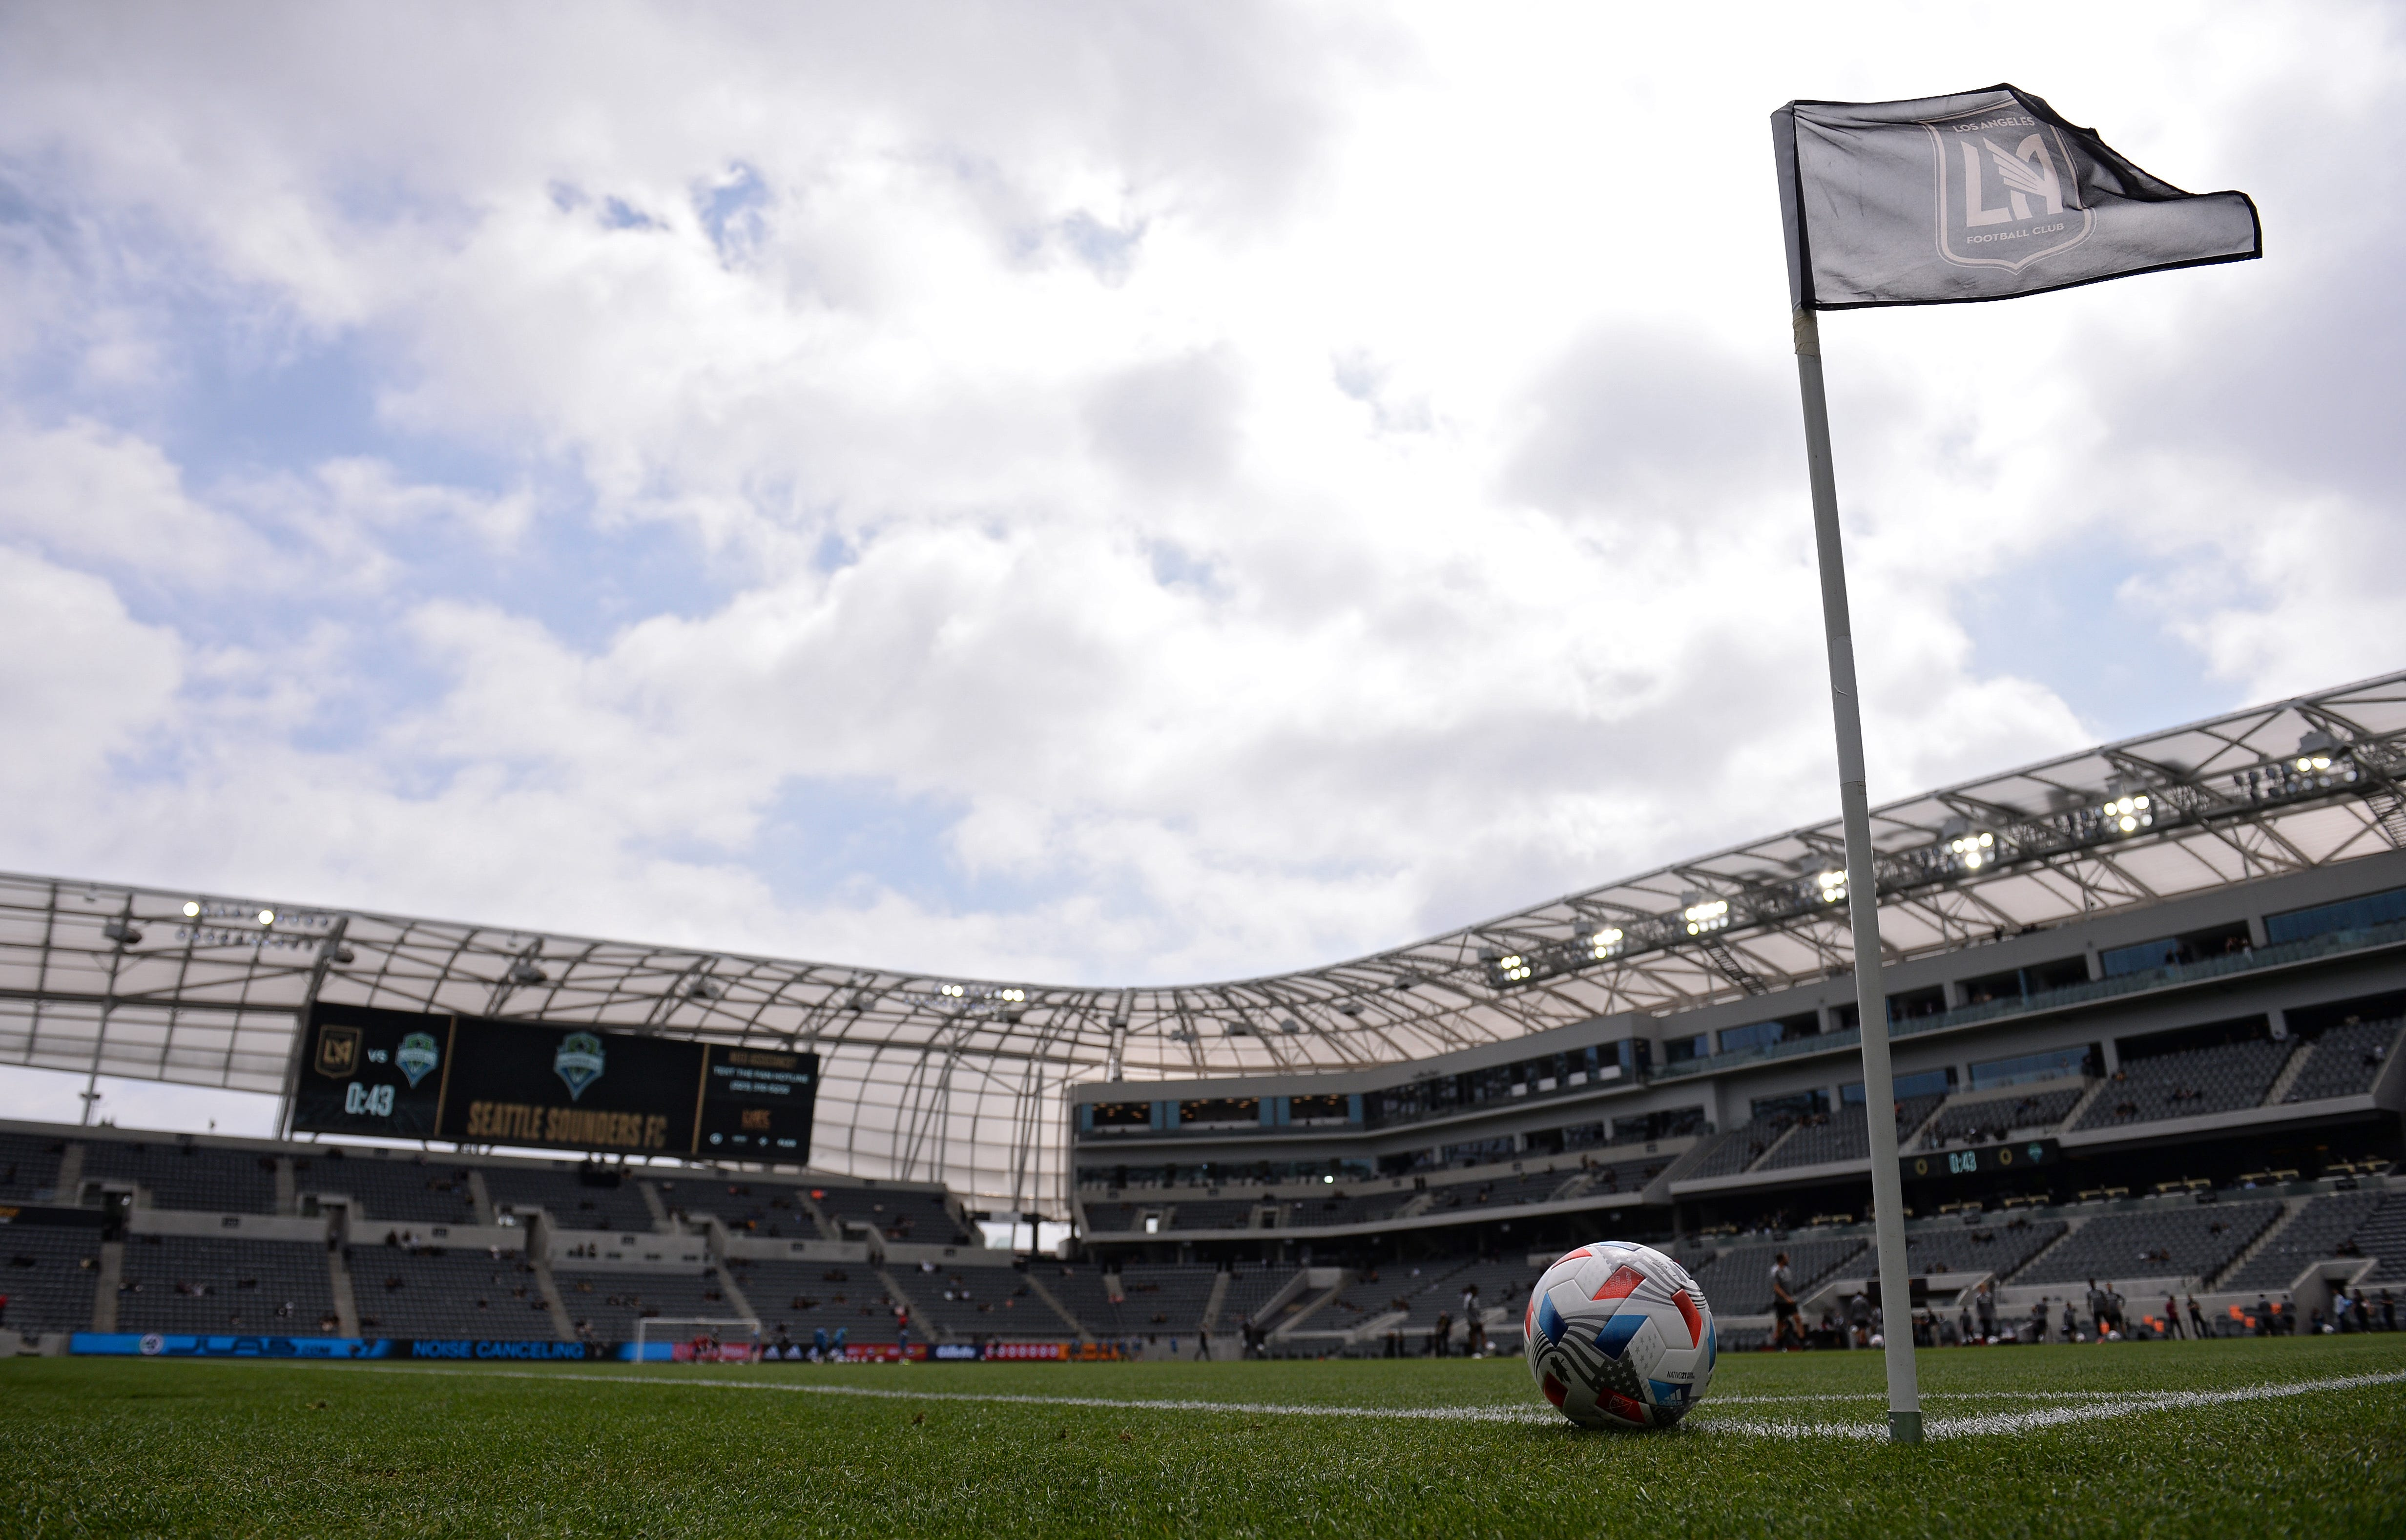 MLS, Liga MX announce details for joint 2021 All-Star Game in Los Angeles